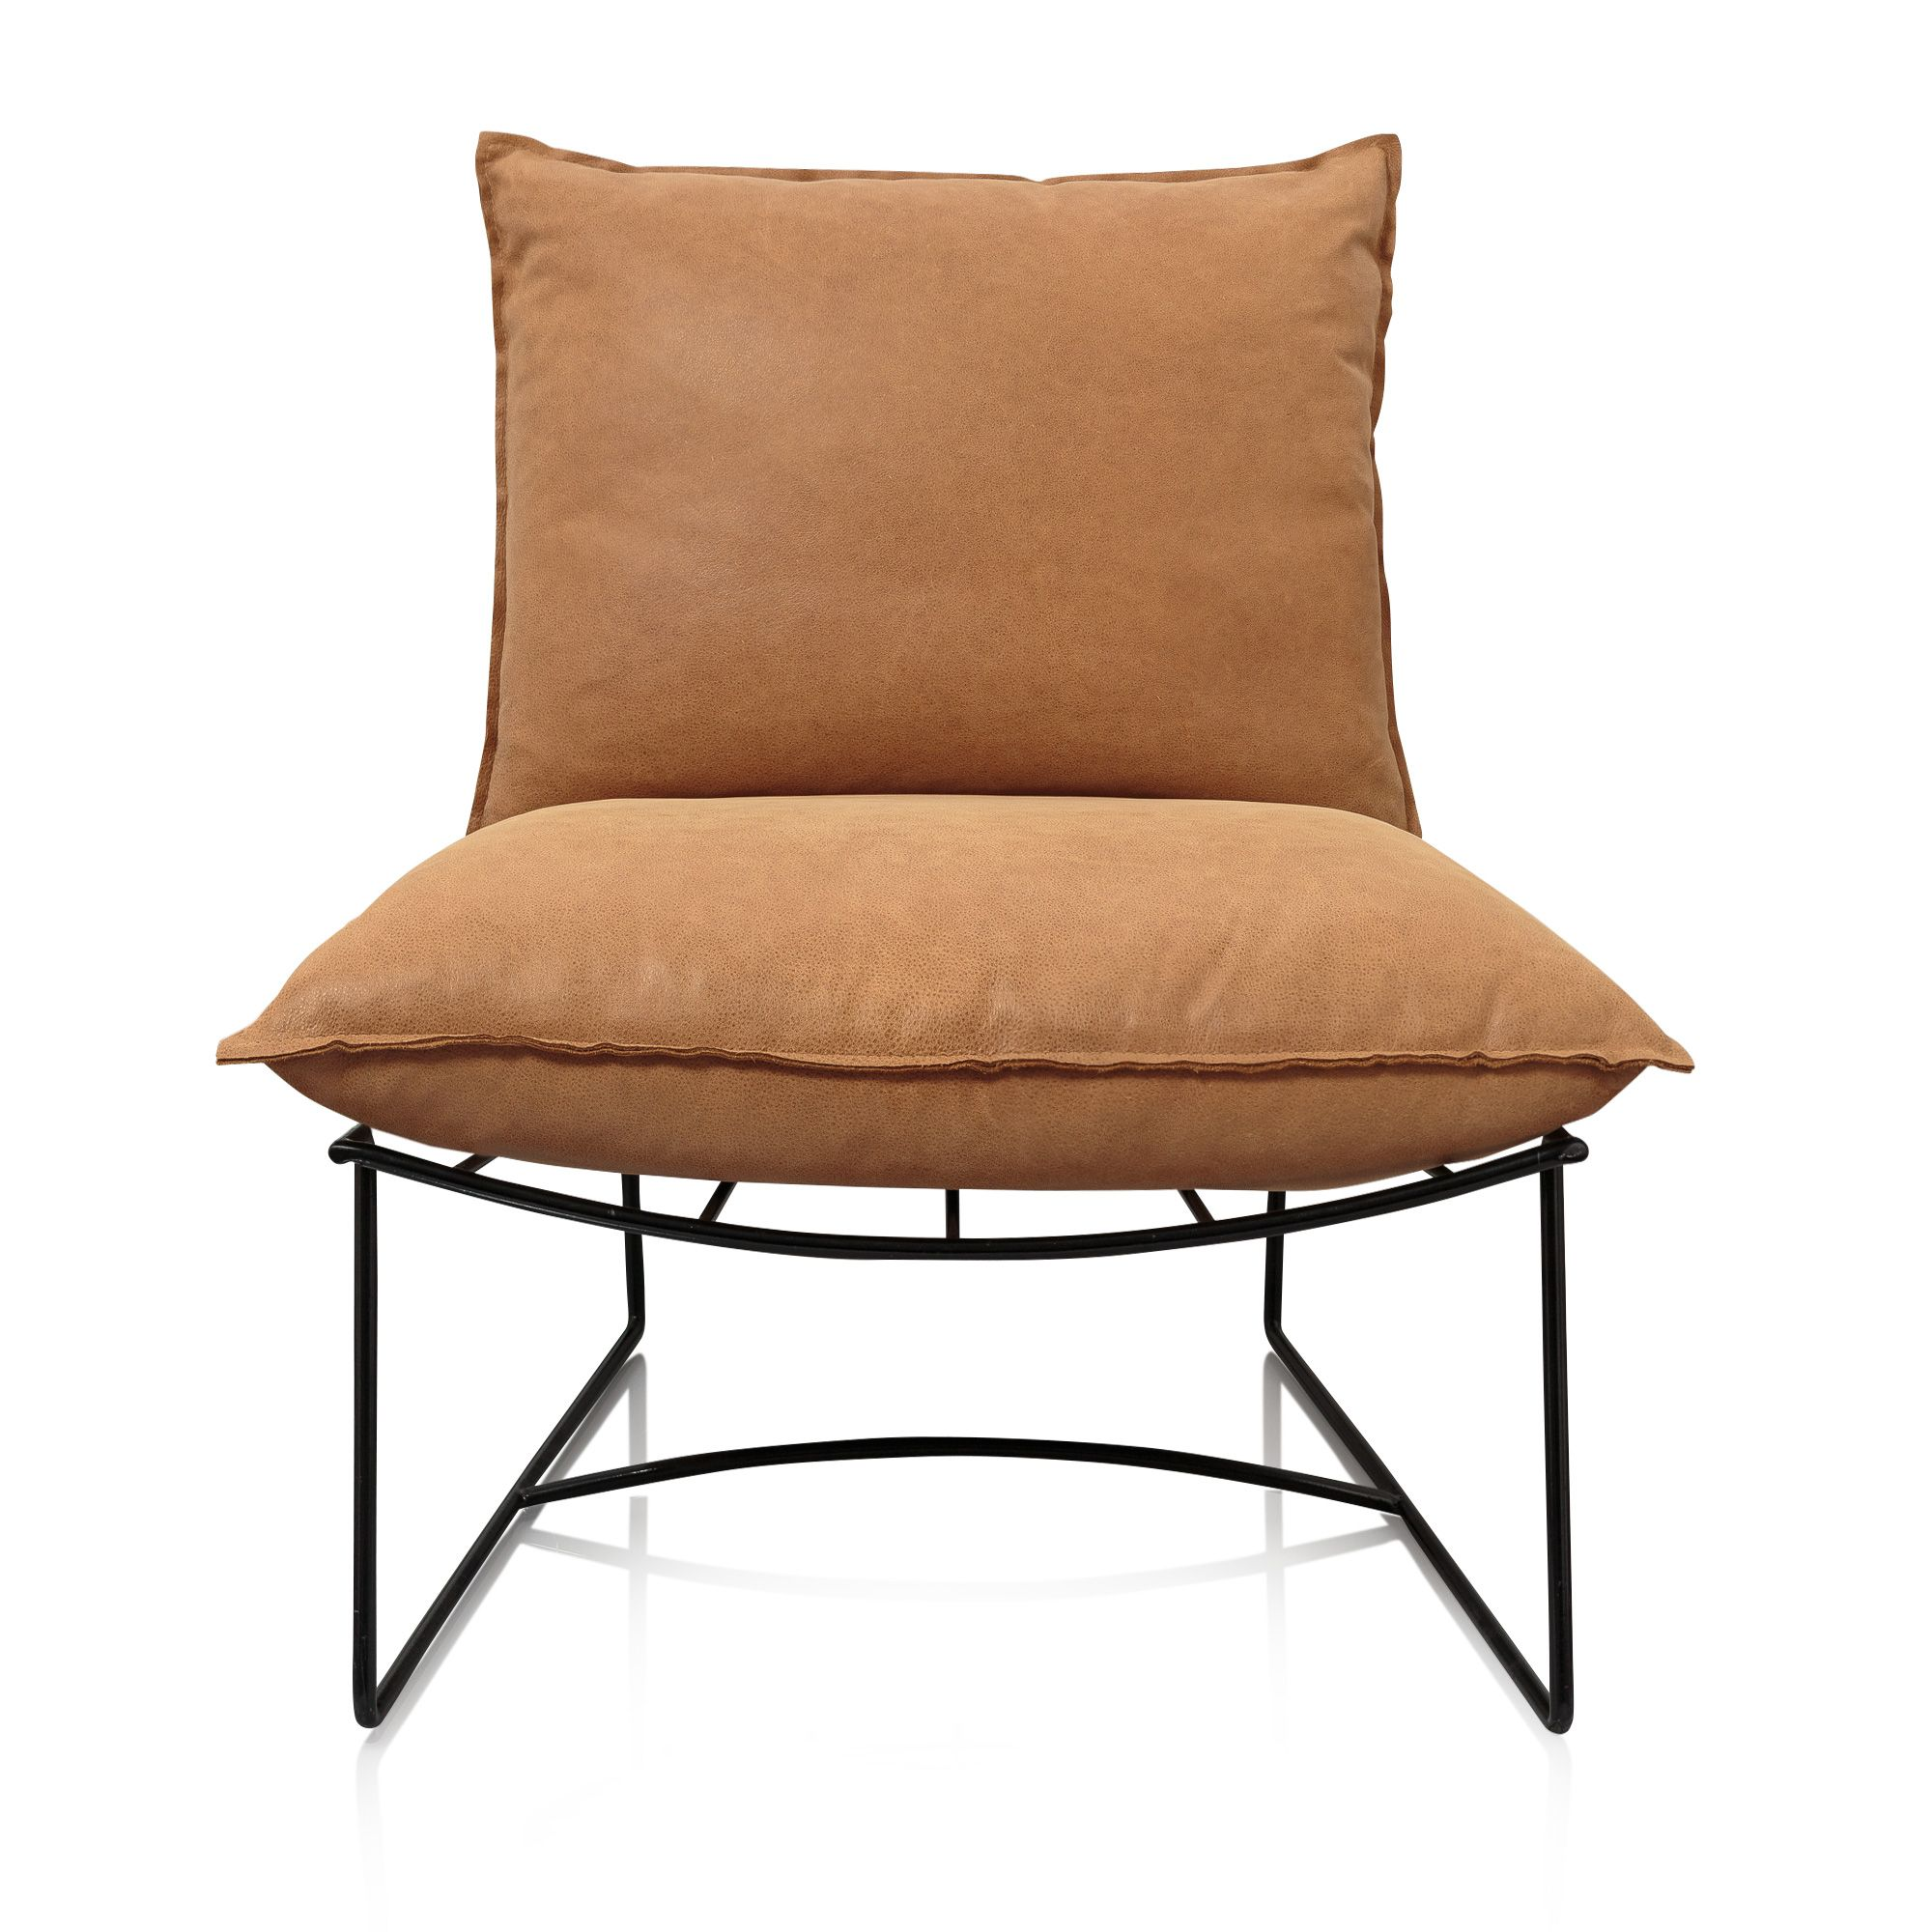 Marvelous Tribeca Leather Chair Theres No Place Like Home Chair Cjindustries Chair Design For Home Cjindustriesco